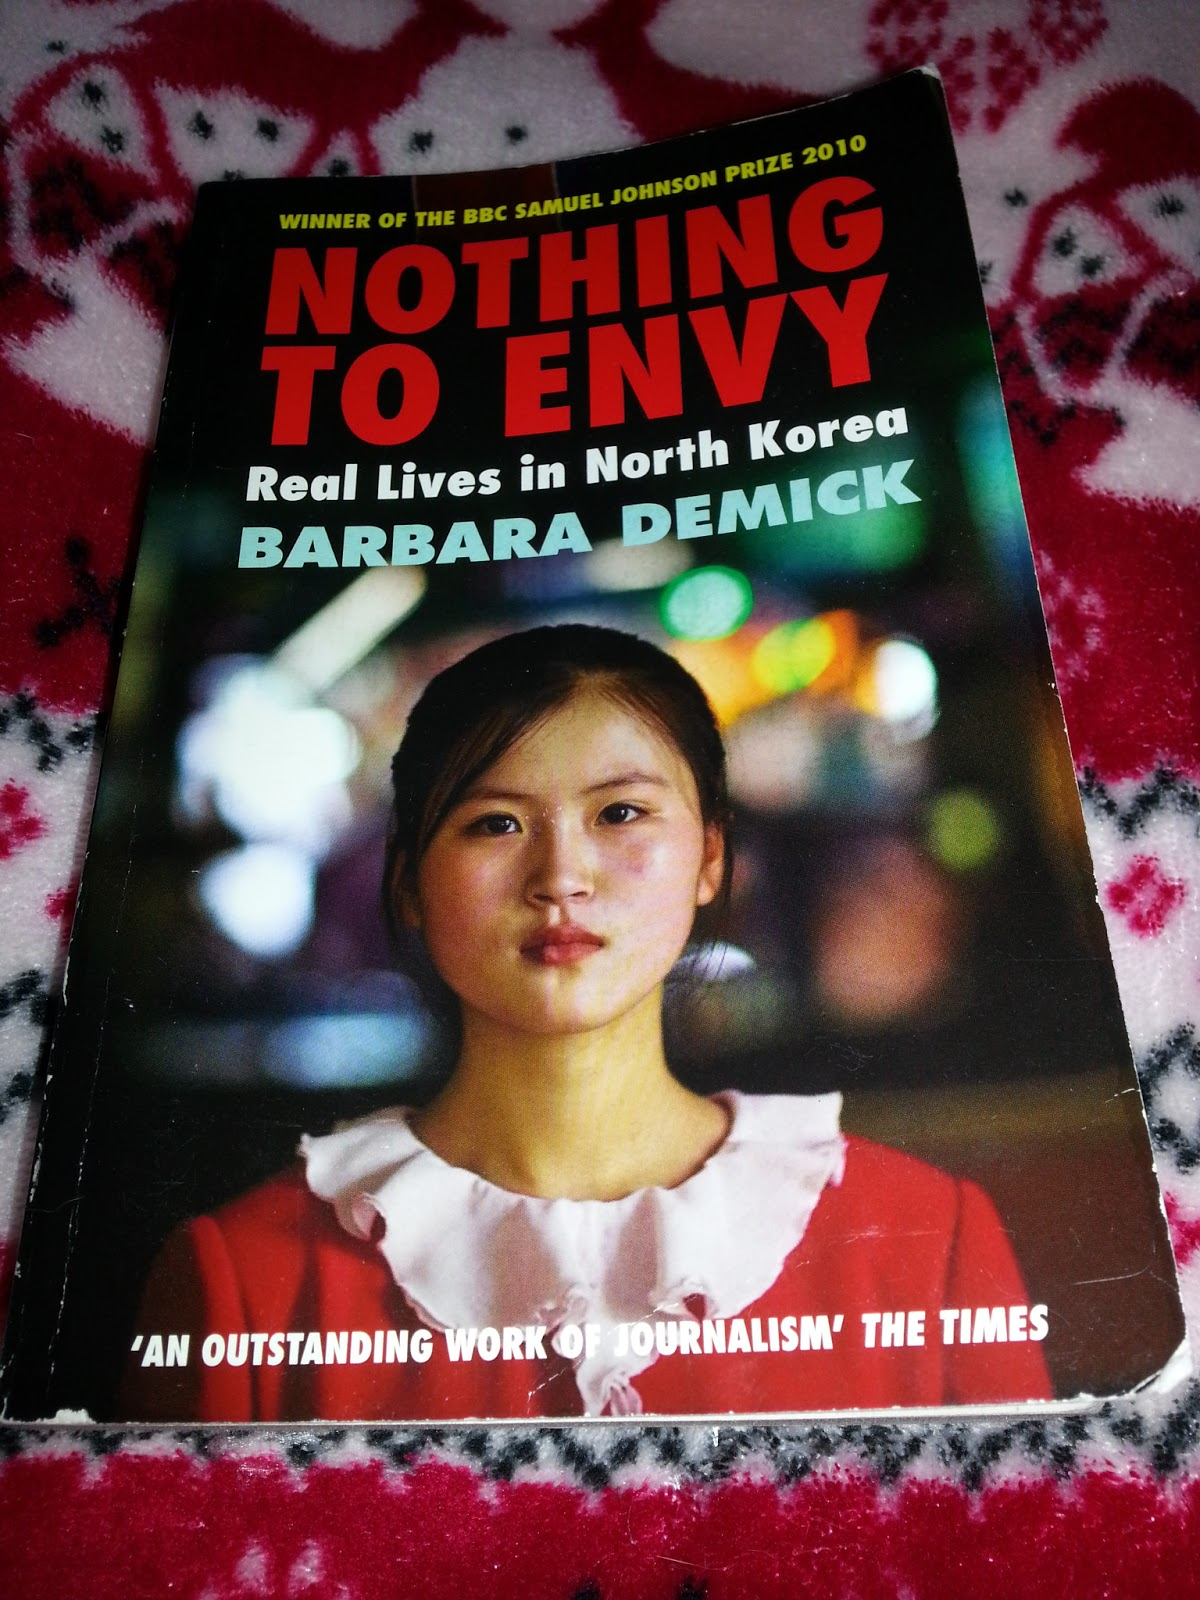 nothing to envy Barbara demick's award-winning study of north korea sheds light on the lives of some of the world's most oppressed people, writes imogen carter.